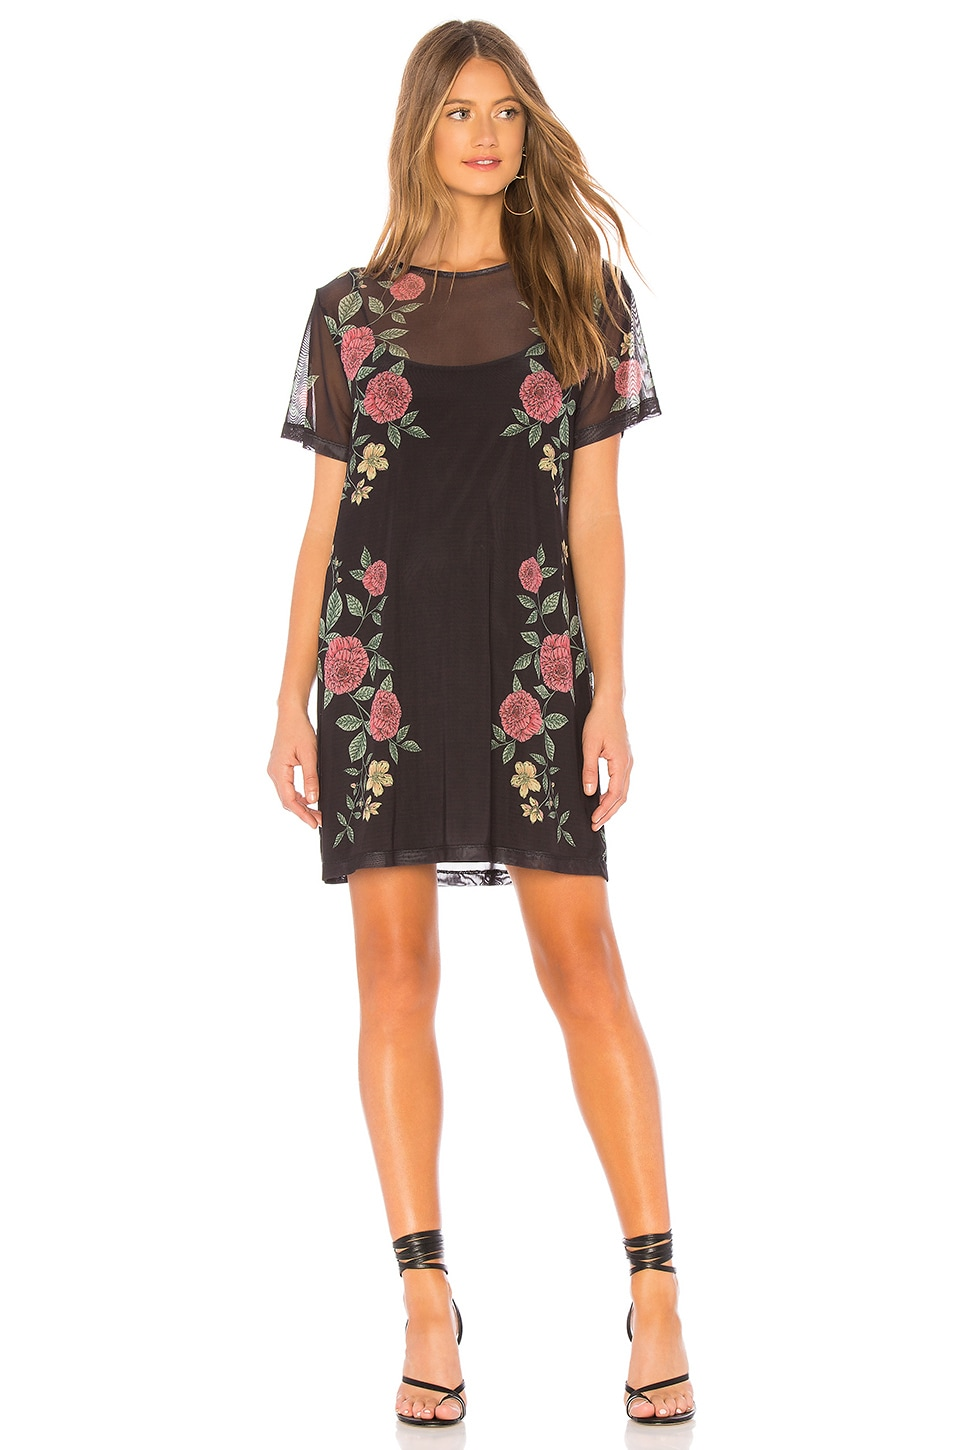 MINKPINK Night Rose Mesh Tee Dress in Multi